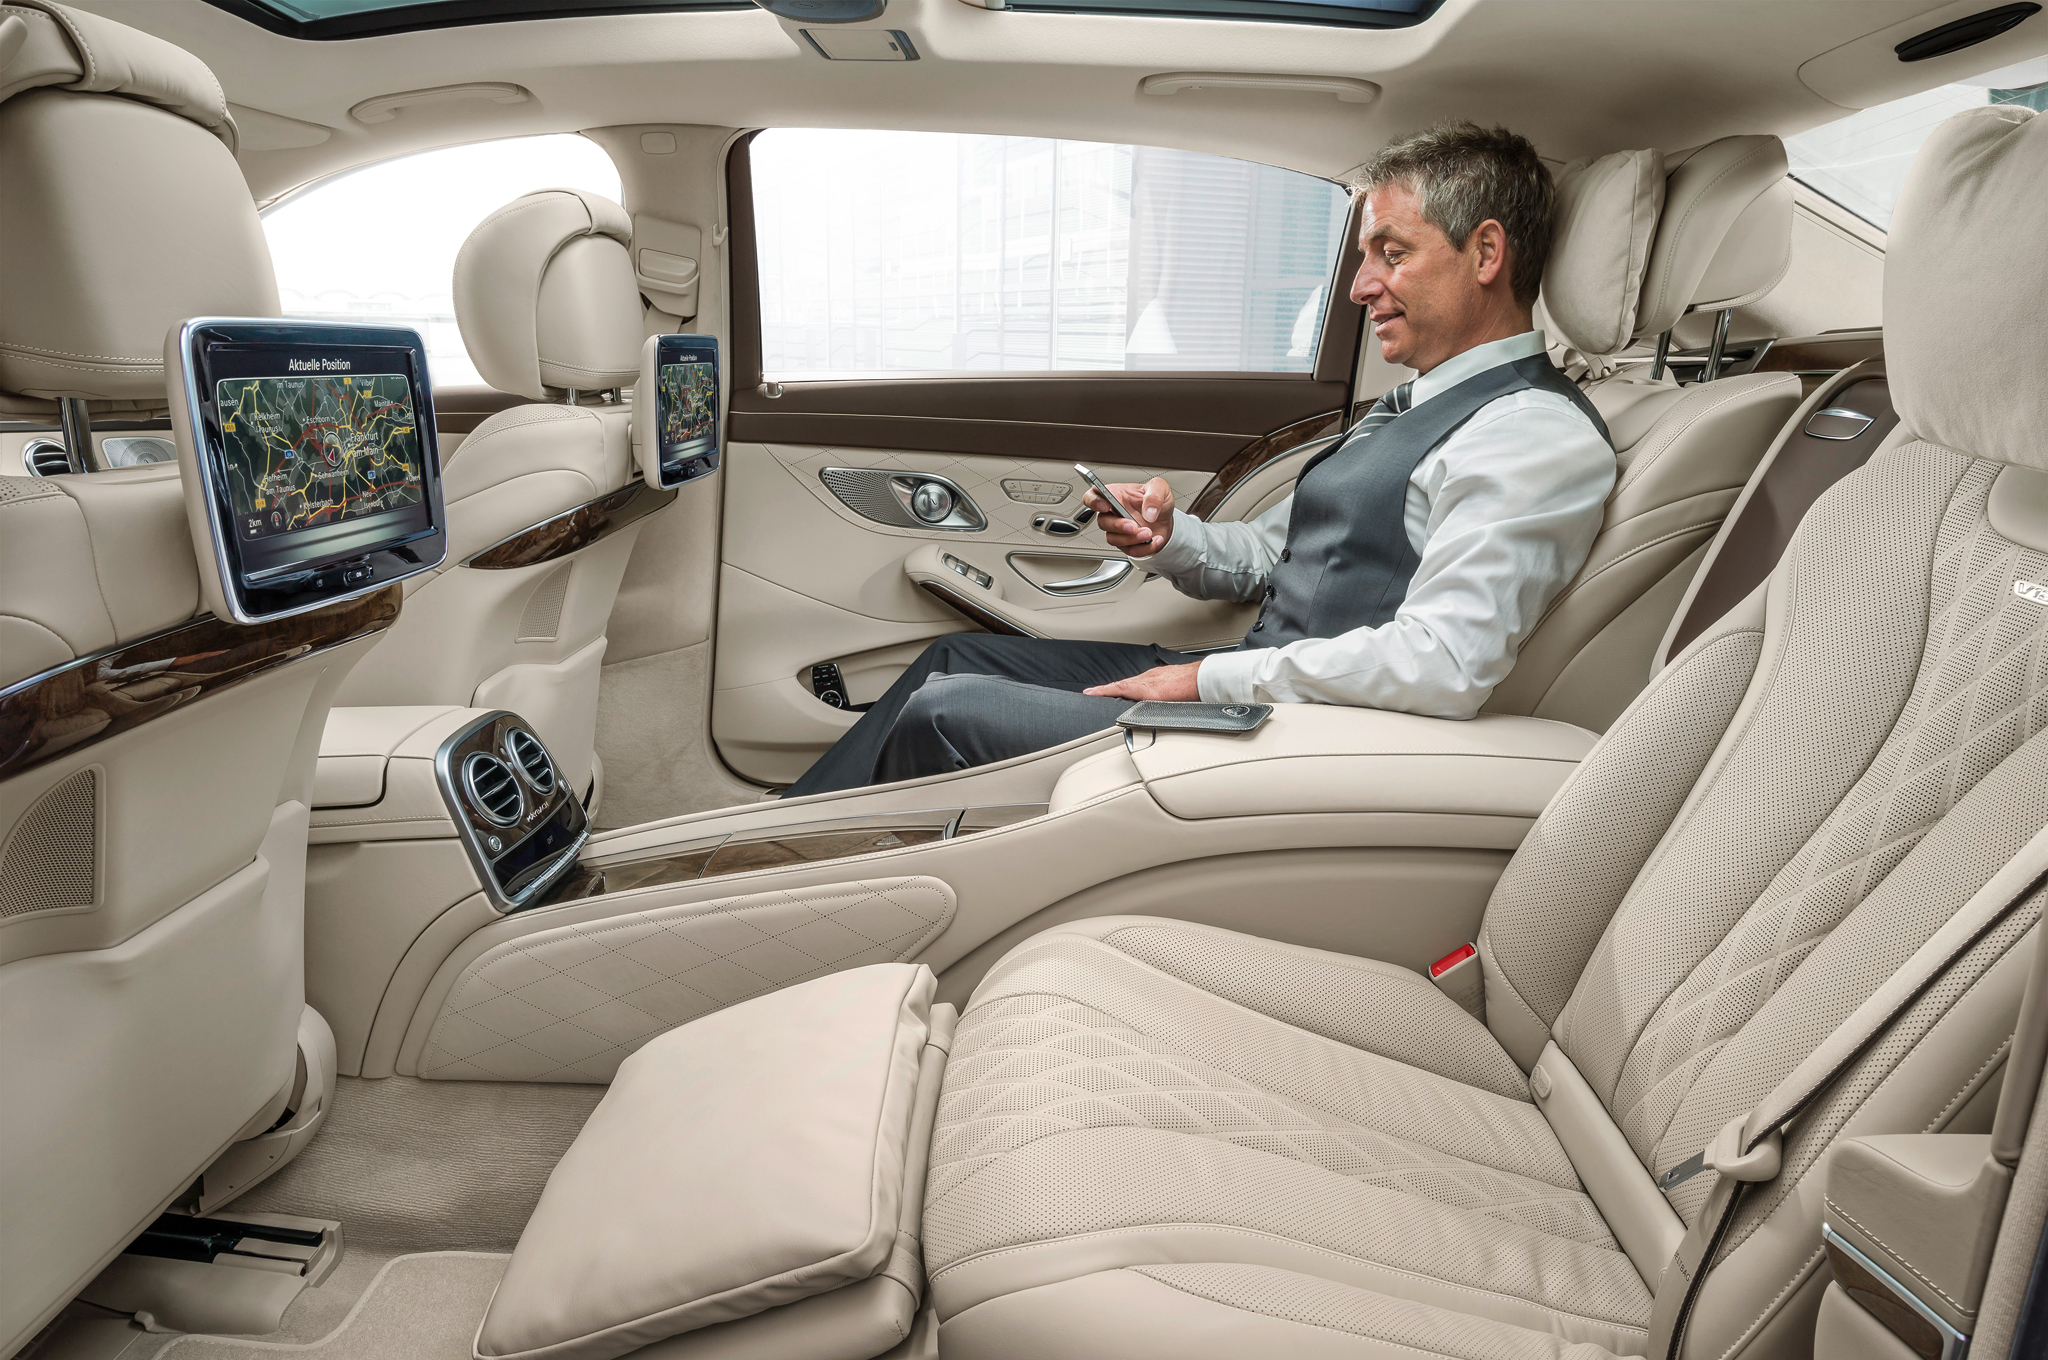 2016-Mercedes-Maybach-S600-rear-interior-seats-02